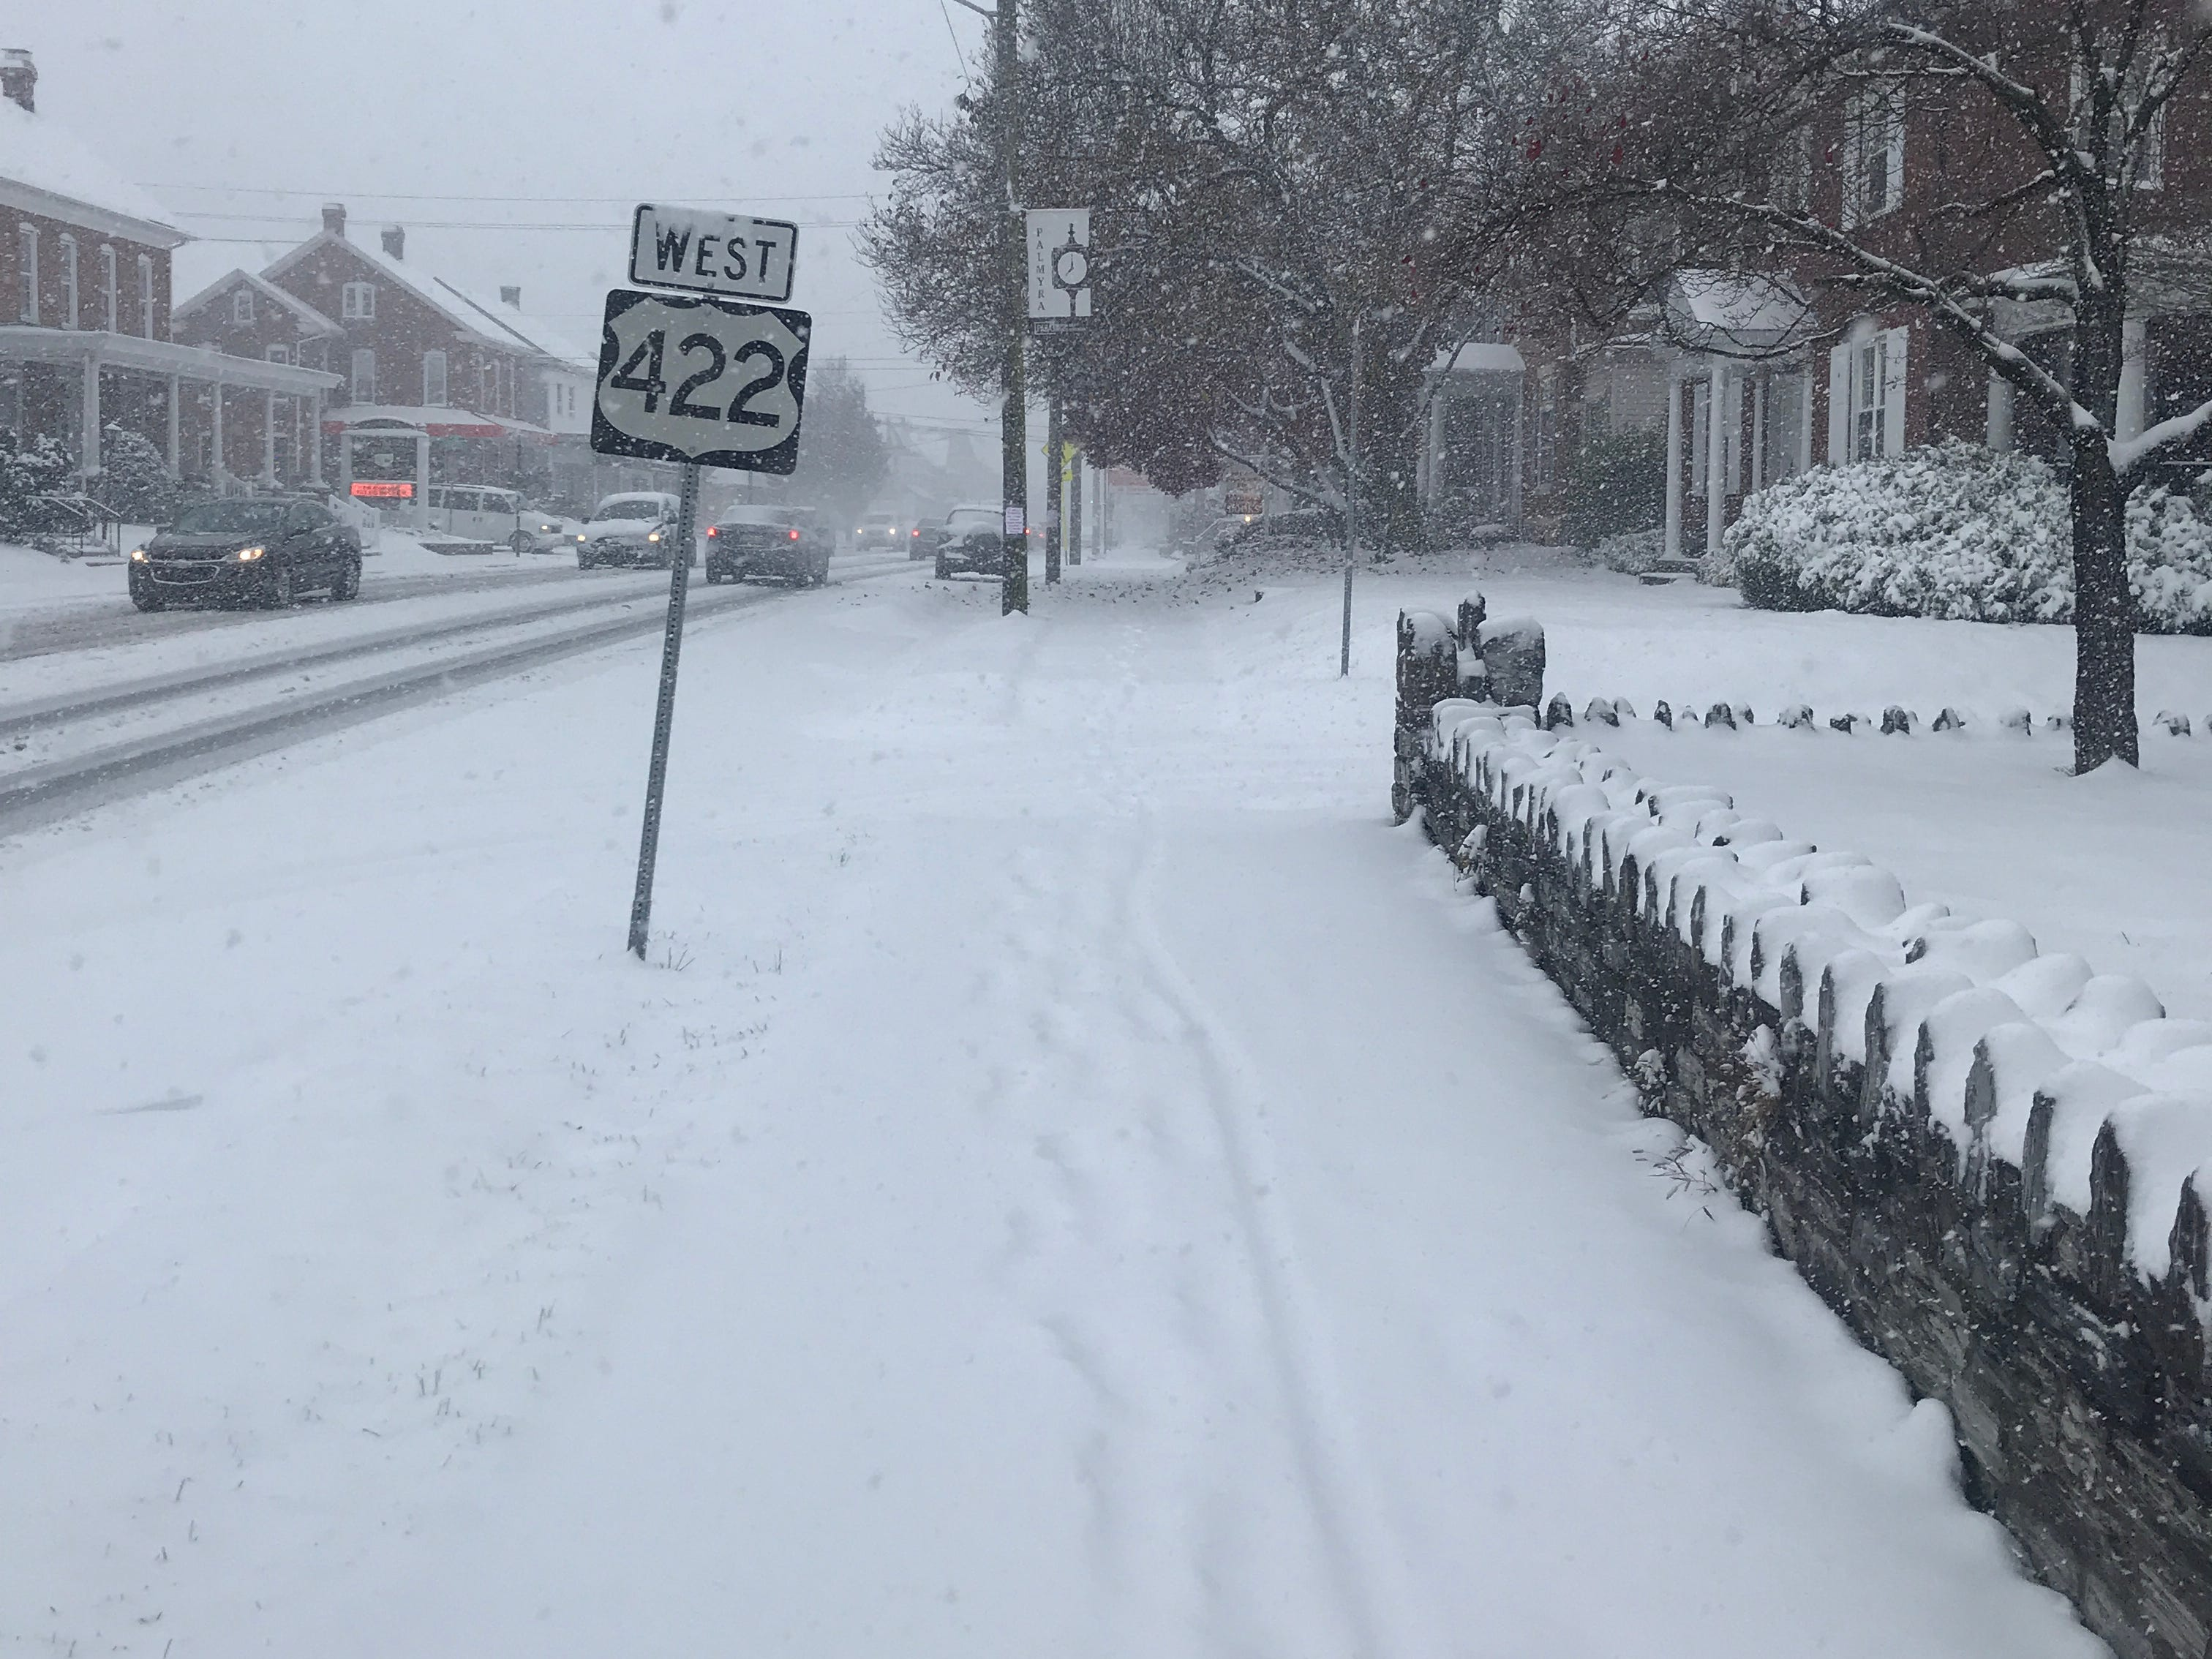 Cars were travelling slowly on Route 422 in Palmyra around 1 p.m. on Nov. 15, with about two inches of snow already on the ground.